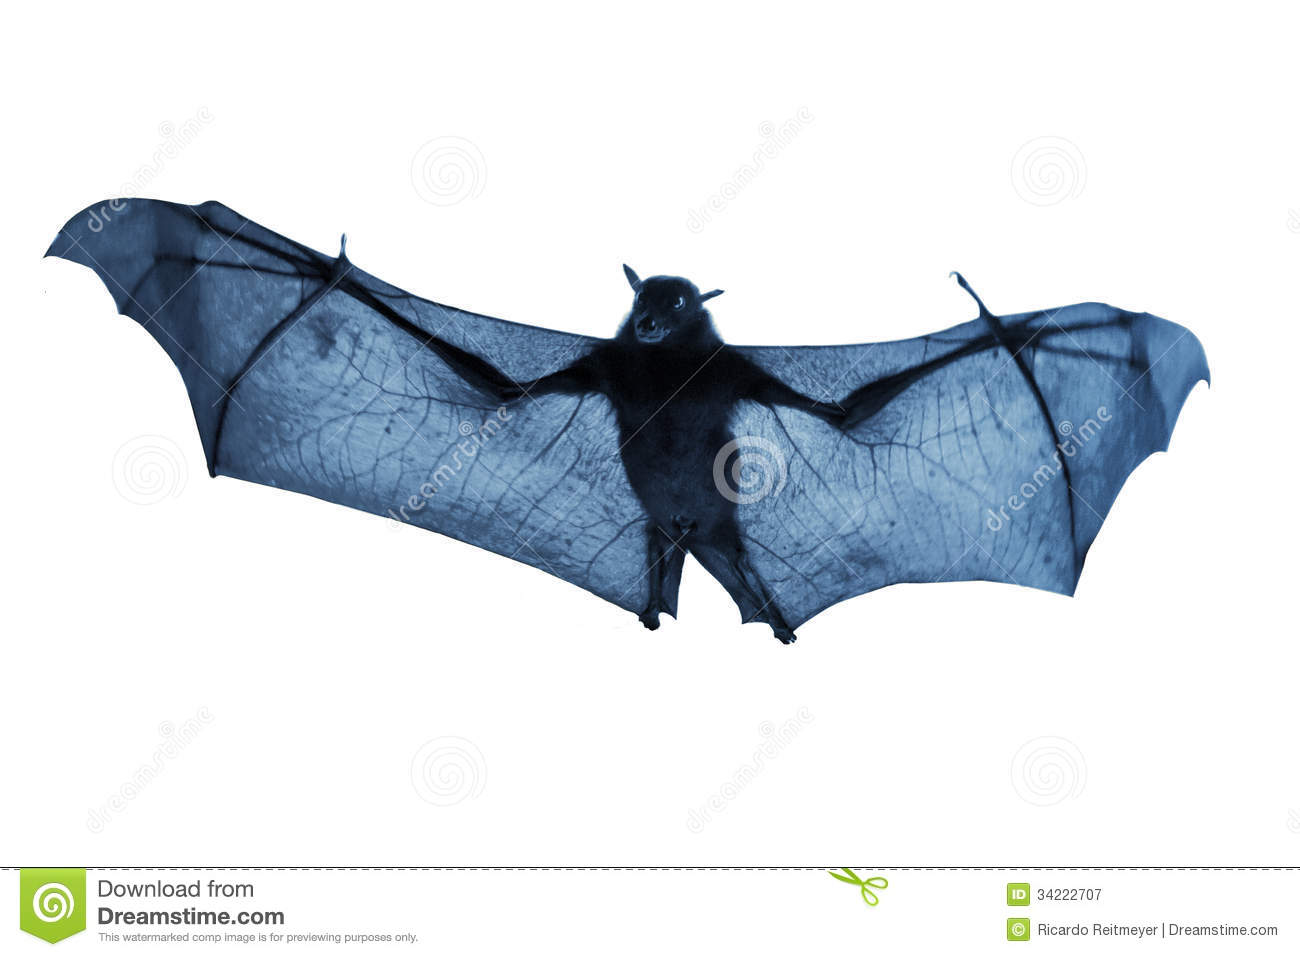 http://thumbs.dreamstime.com/z/creepy-blue-nighttime-flying-halloween-bat-isolated-white-real-life-now-tone-was-shot-its-wings-extended-34222707.jpg